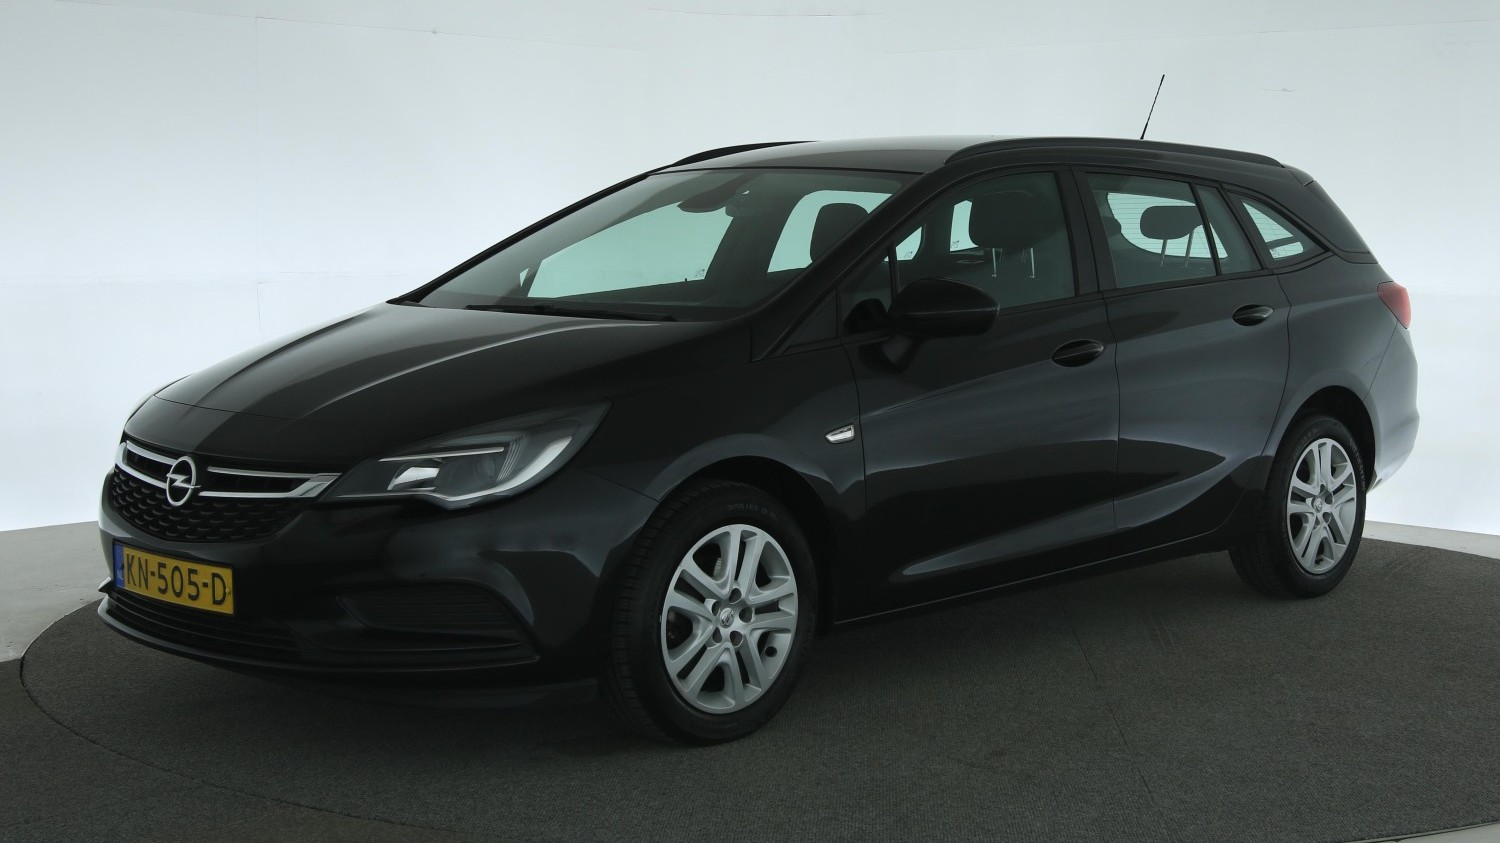 Opel Astra Station 2016 KN-505-D 1